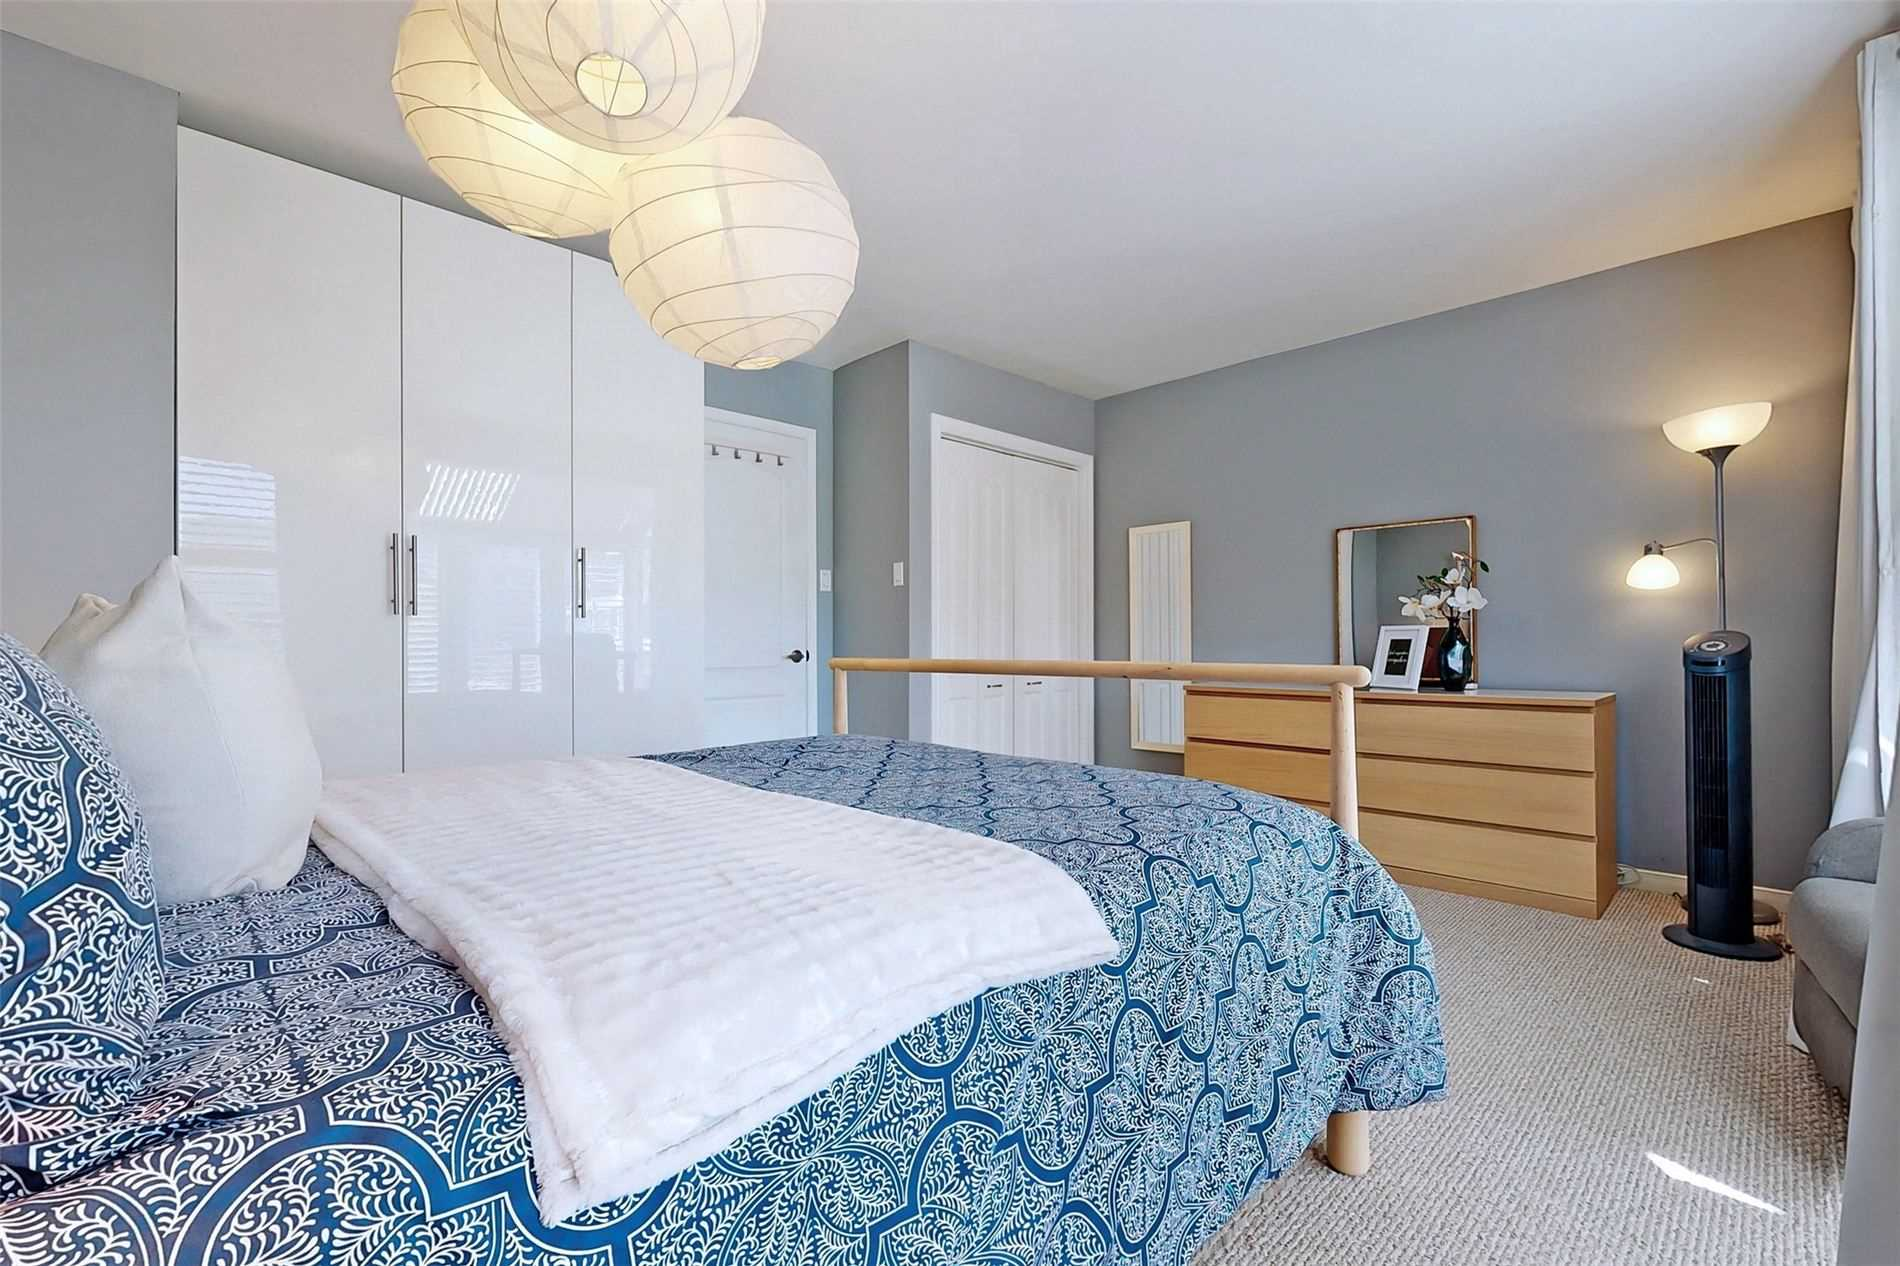 Image 24 of 40 showing inside of 3 Bedroom Condo Townhouse 3-Storey for Sale at 14 Cumberland Lane Unit# 7, Ajax L1S7K4